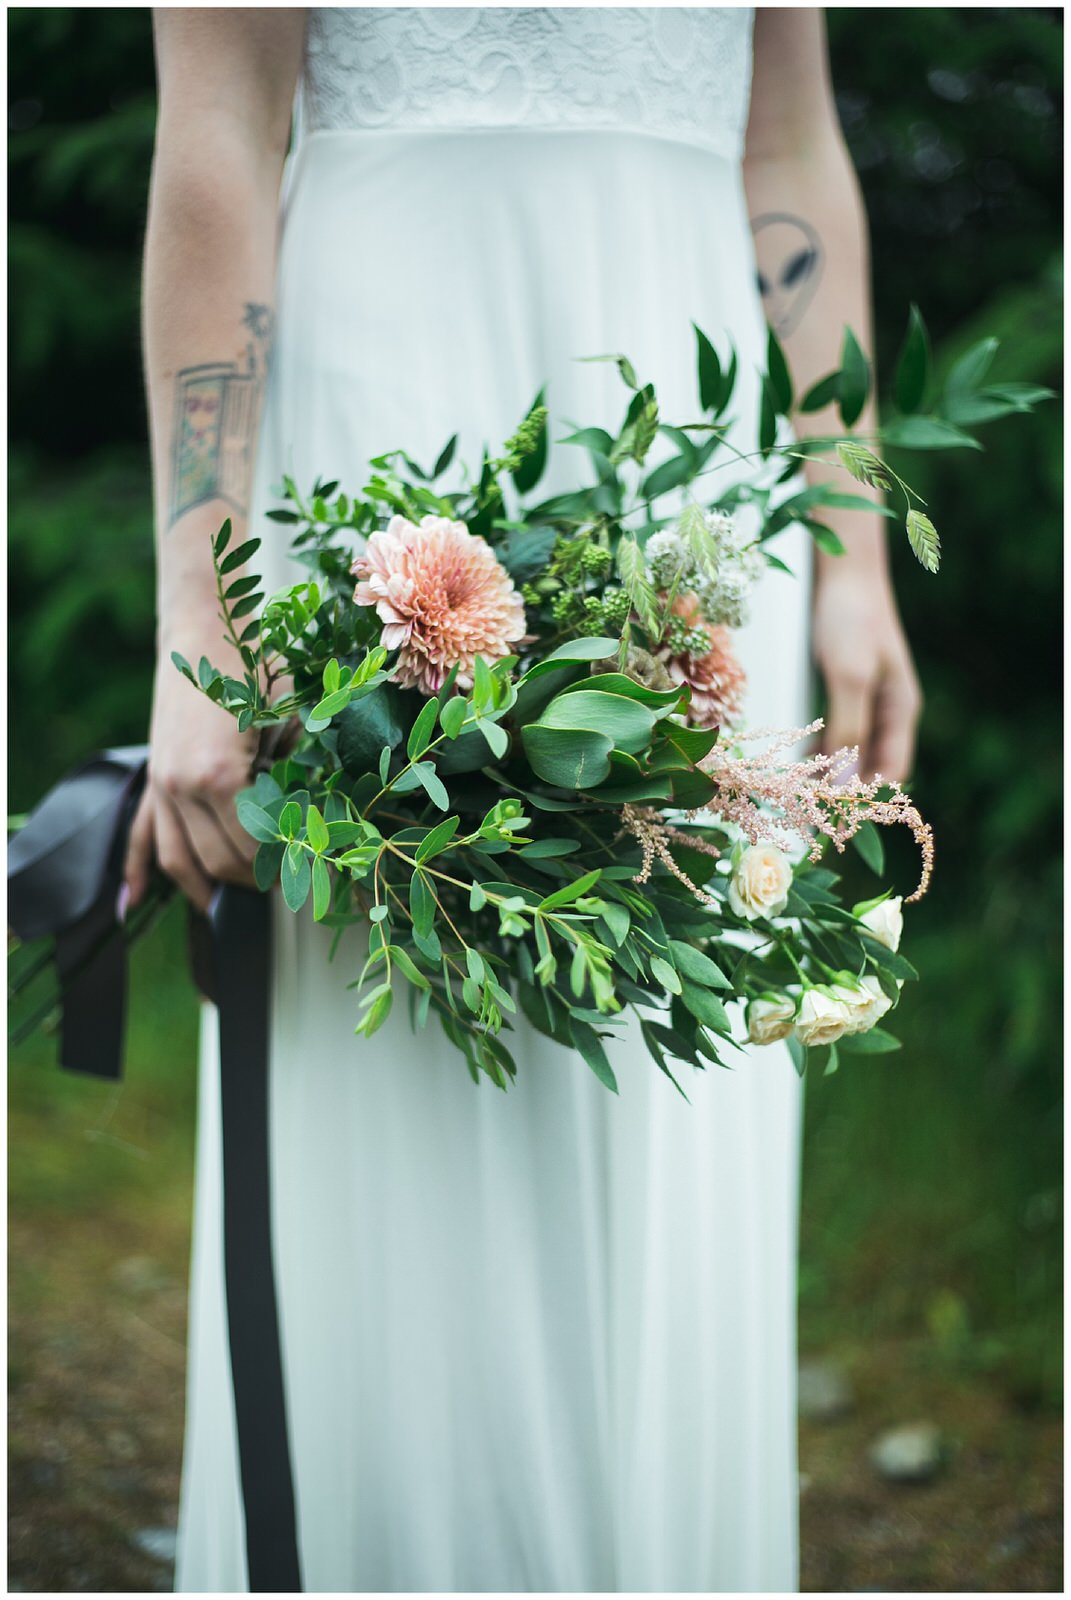 Wild Green and pastel orangey pink flowers in a wedding bouquet tied with grey ribbon